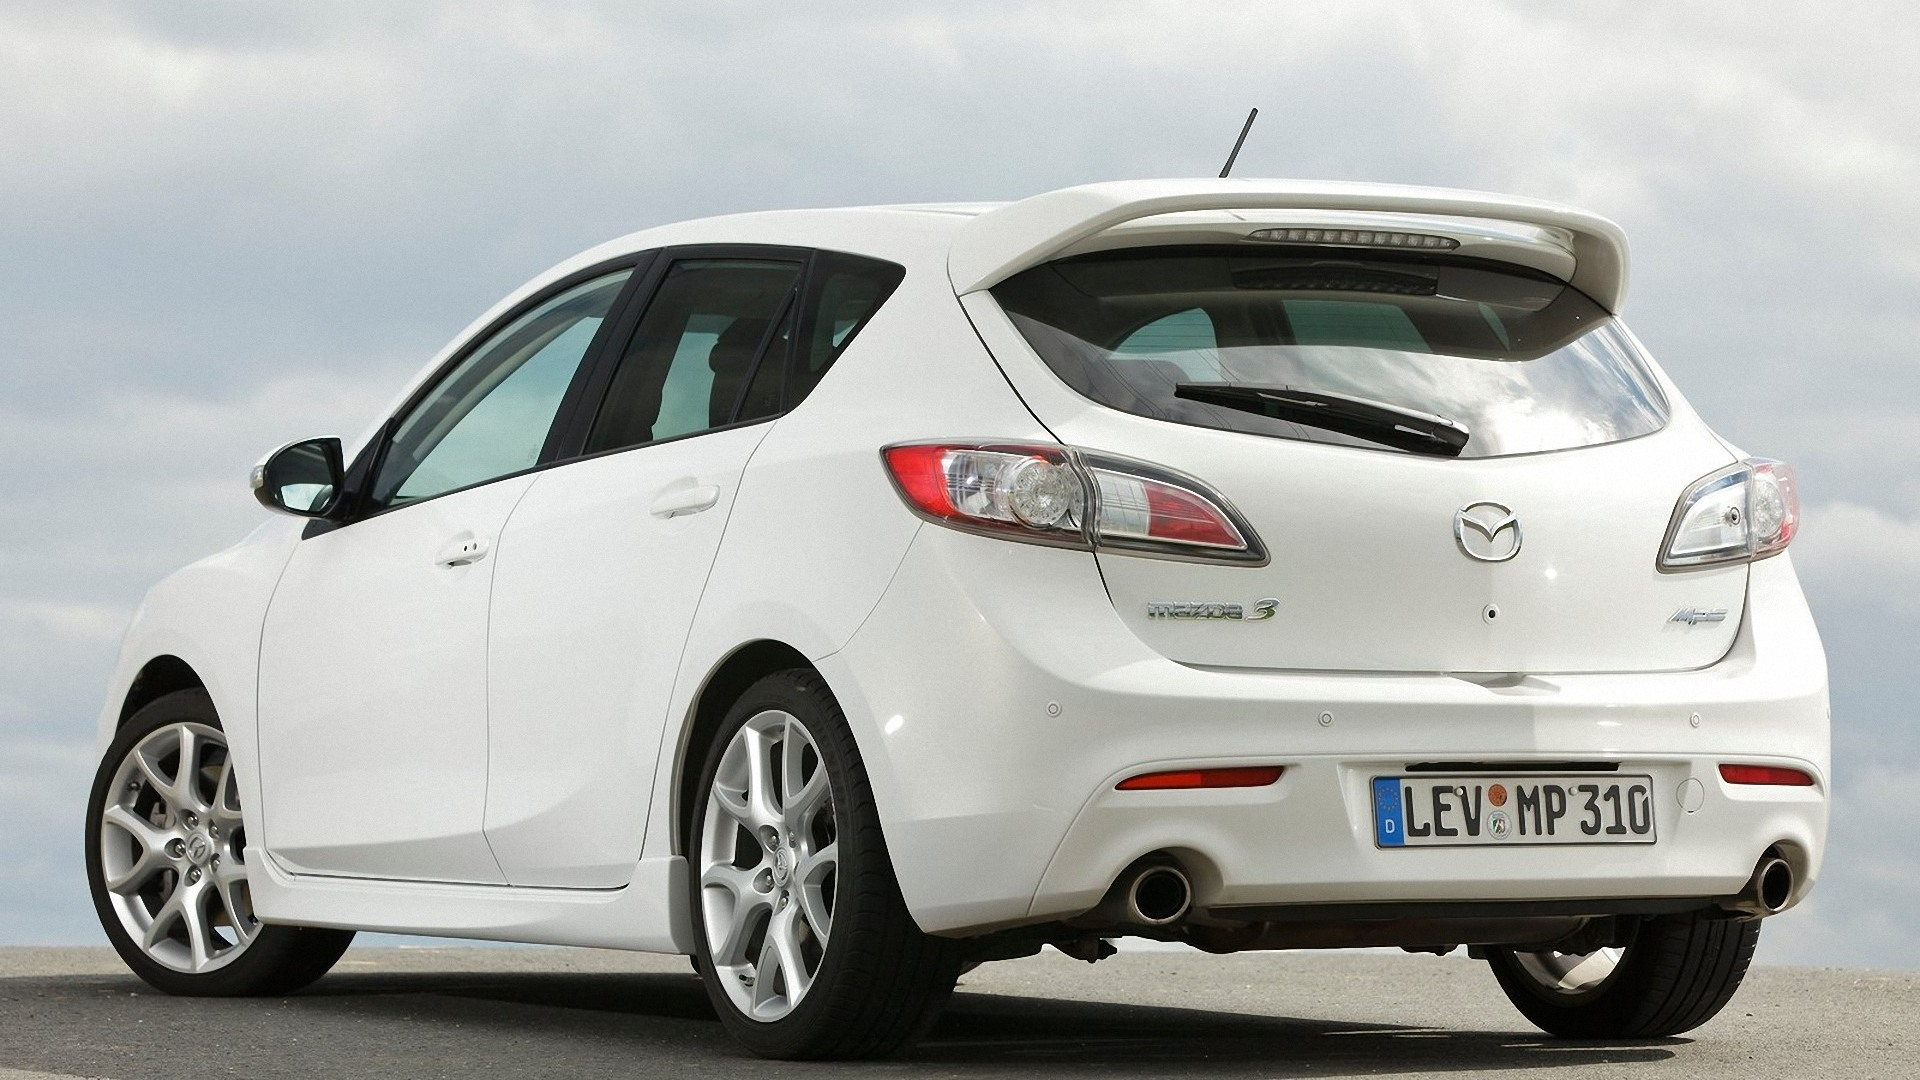 You will download Mazda 3 MPS  HD Wallpaper